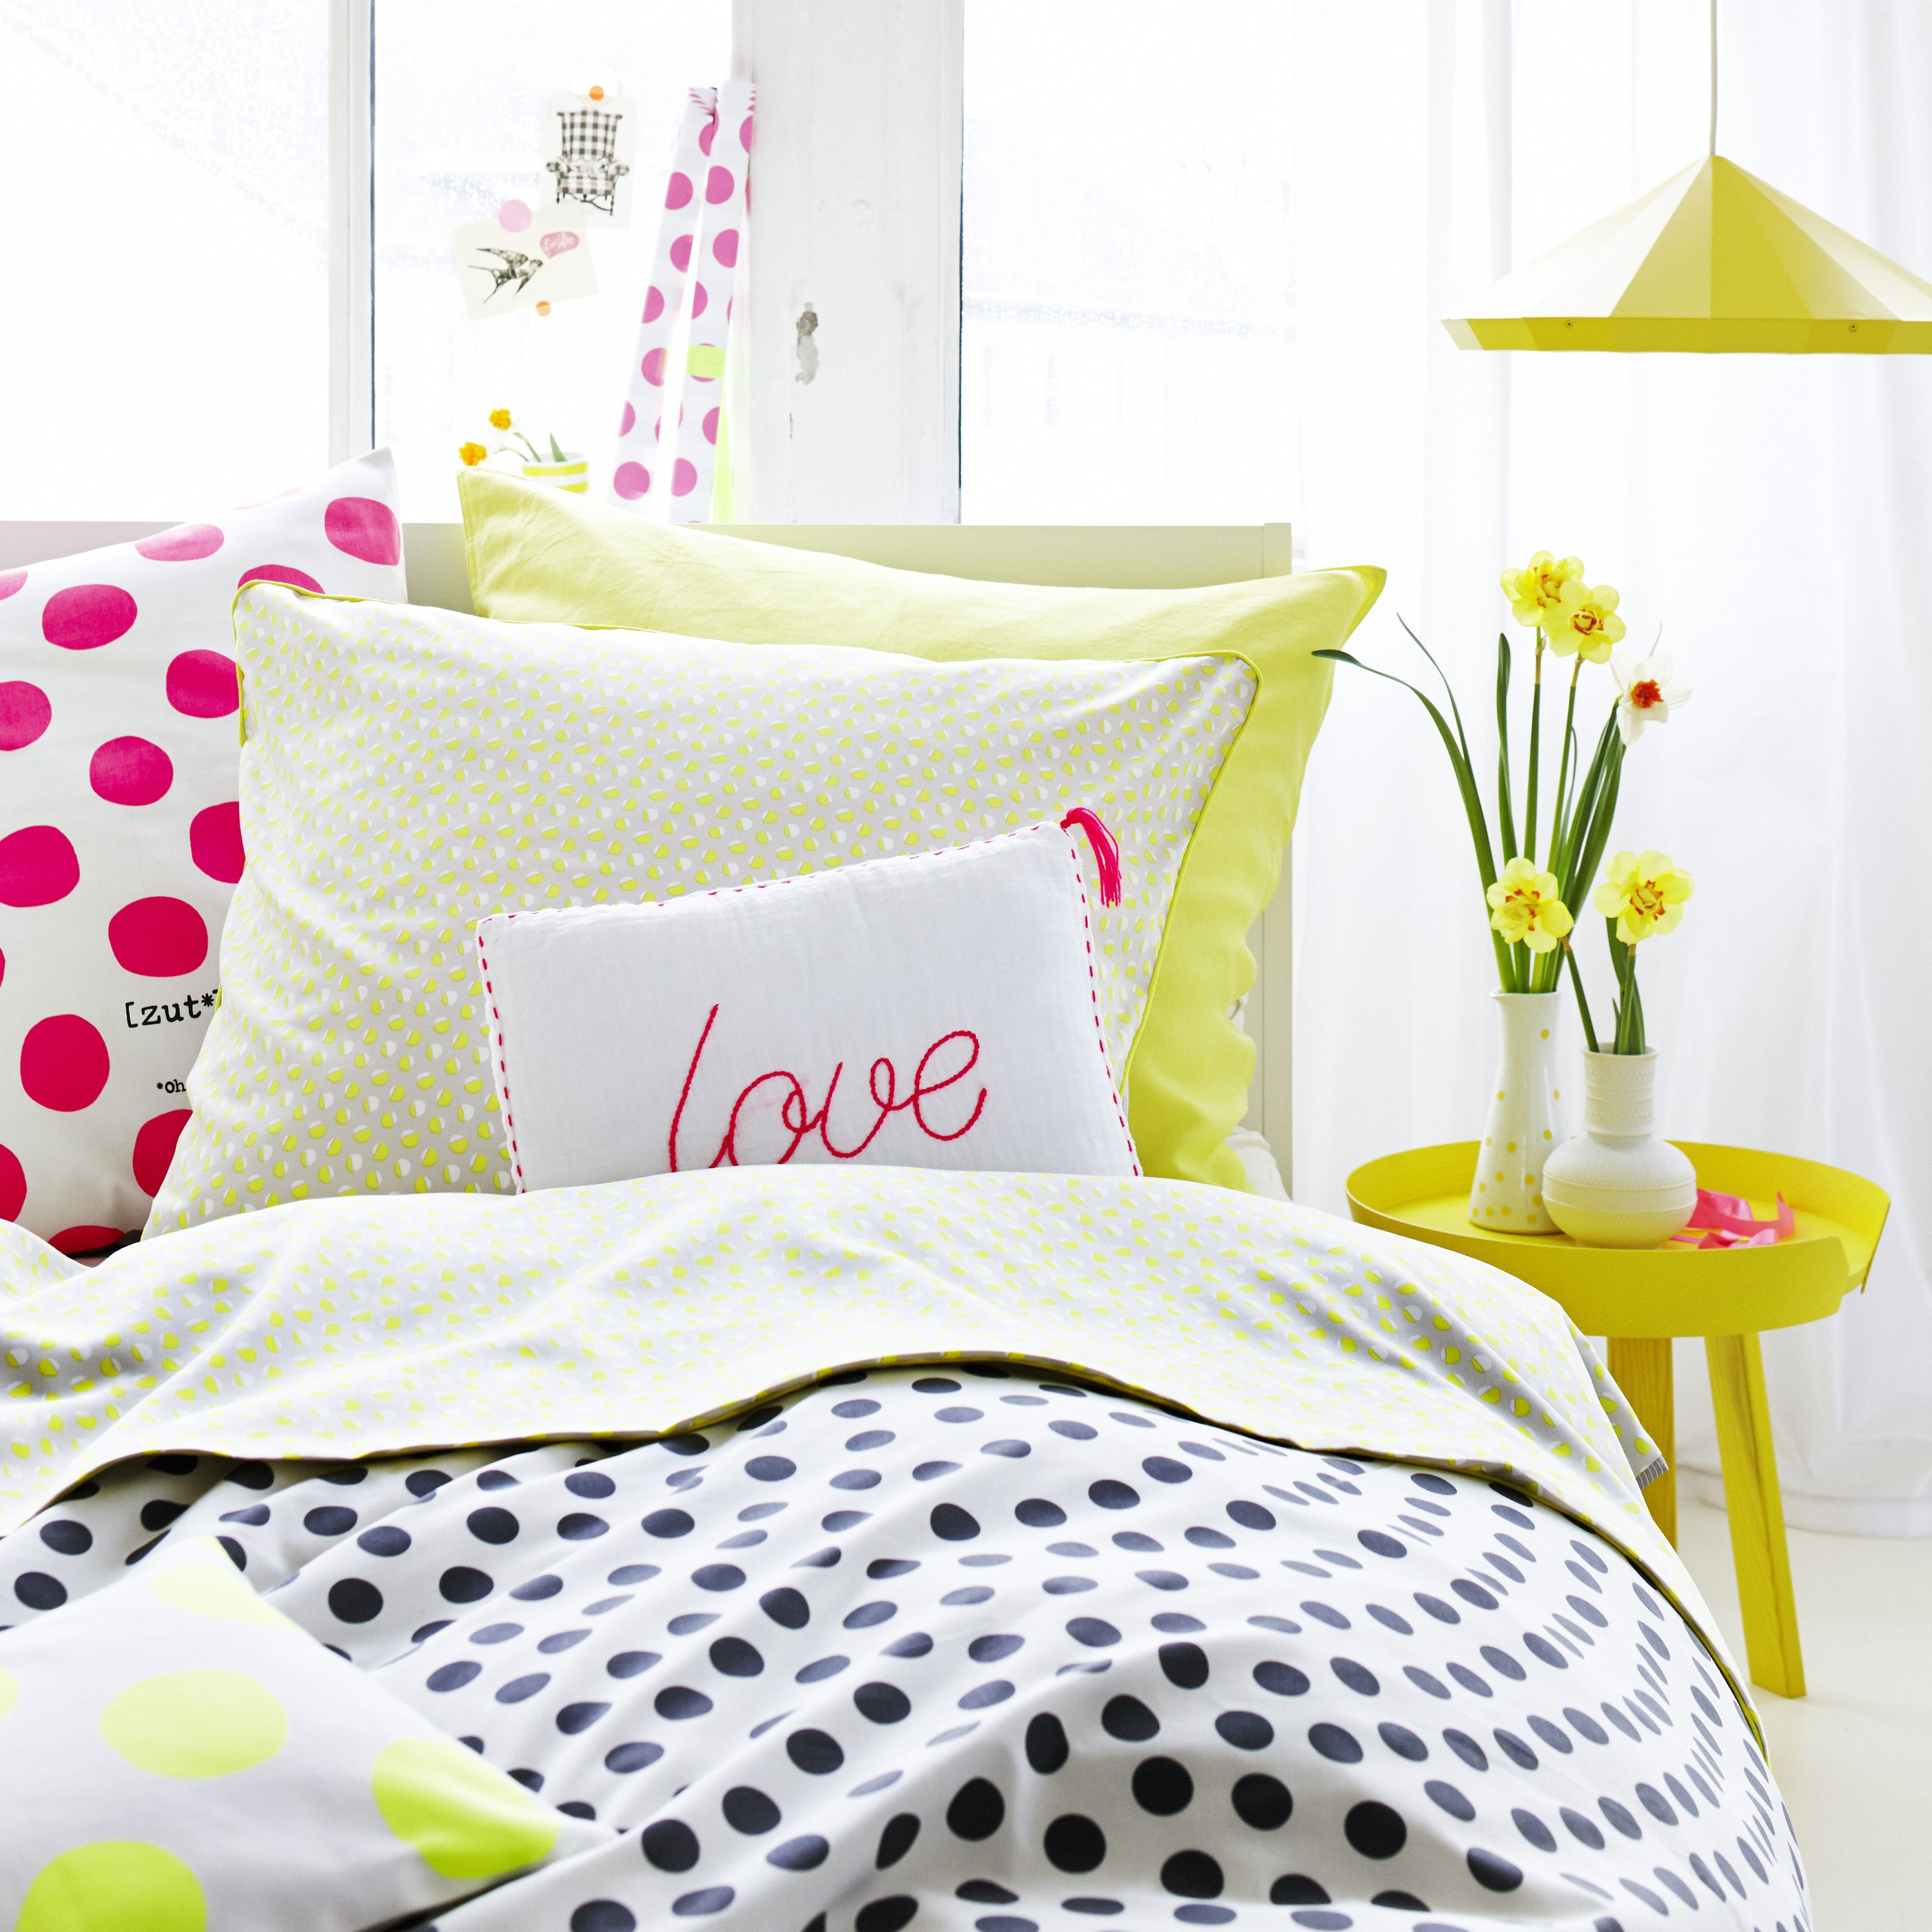 Cute bedroom with throw pillows